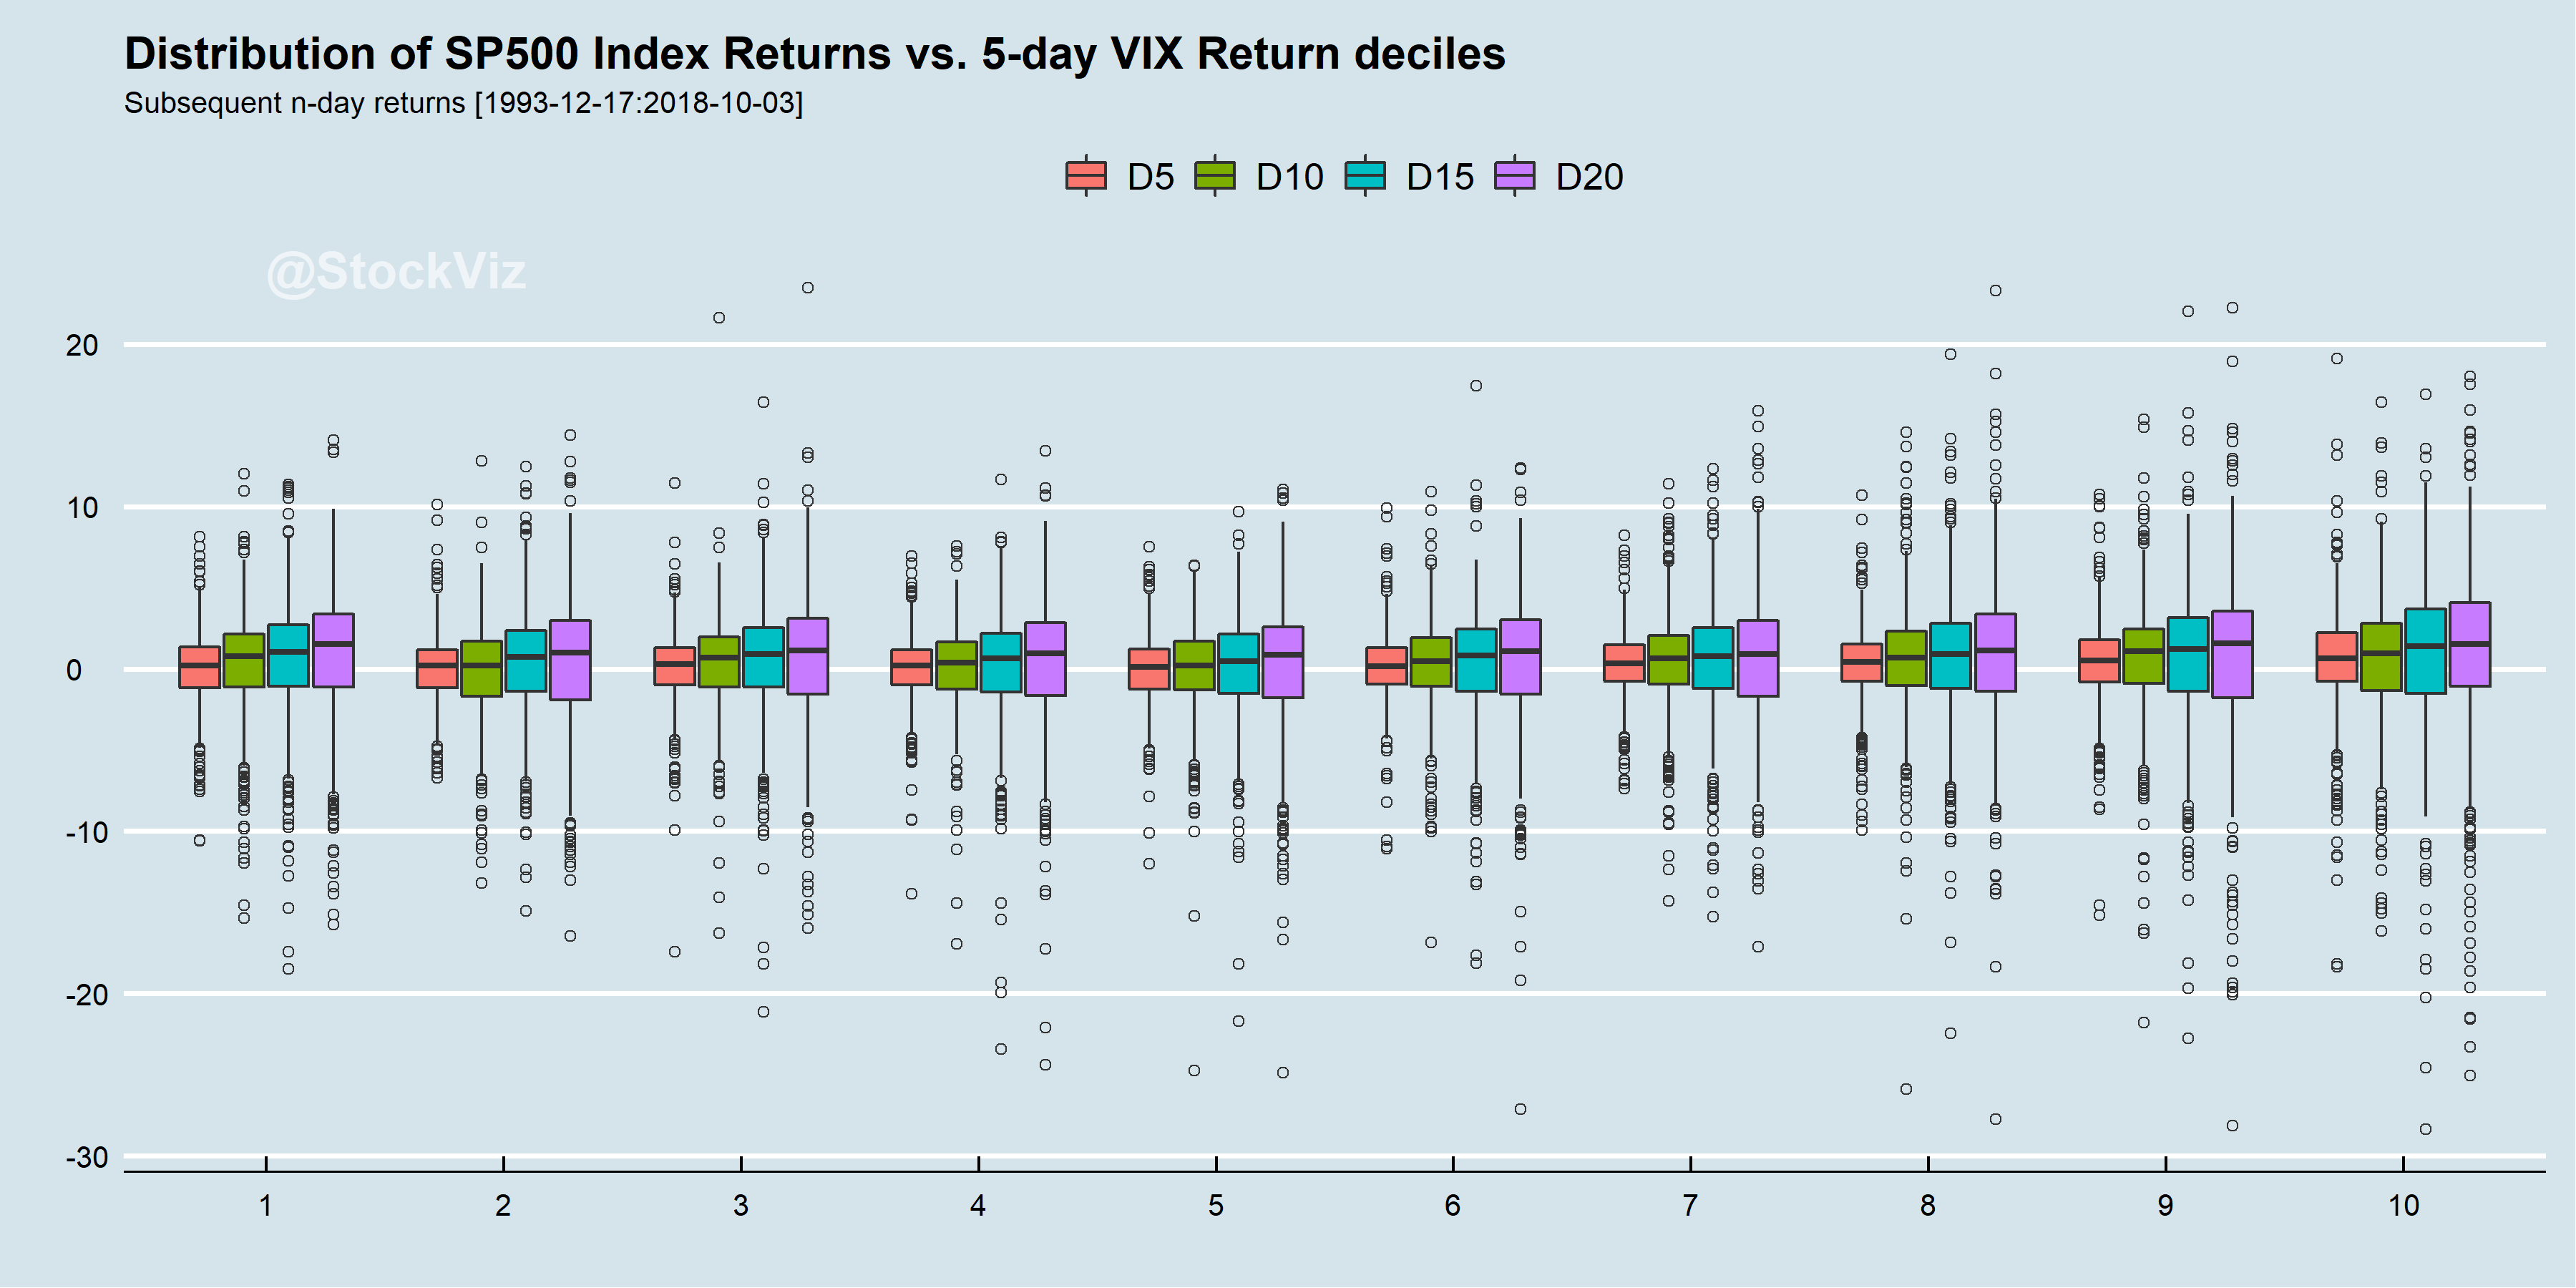 S&P 500 returns over changes in VIX